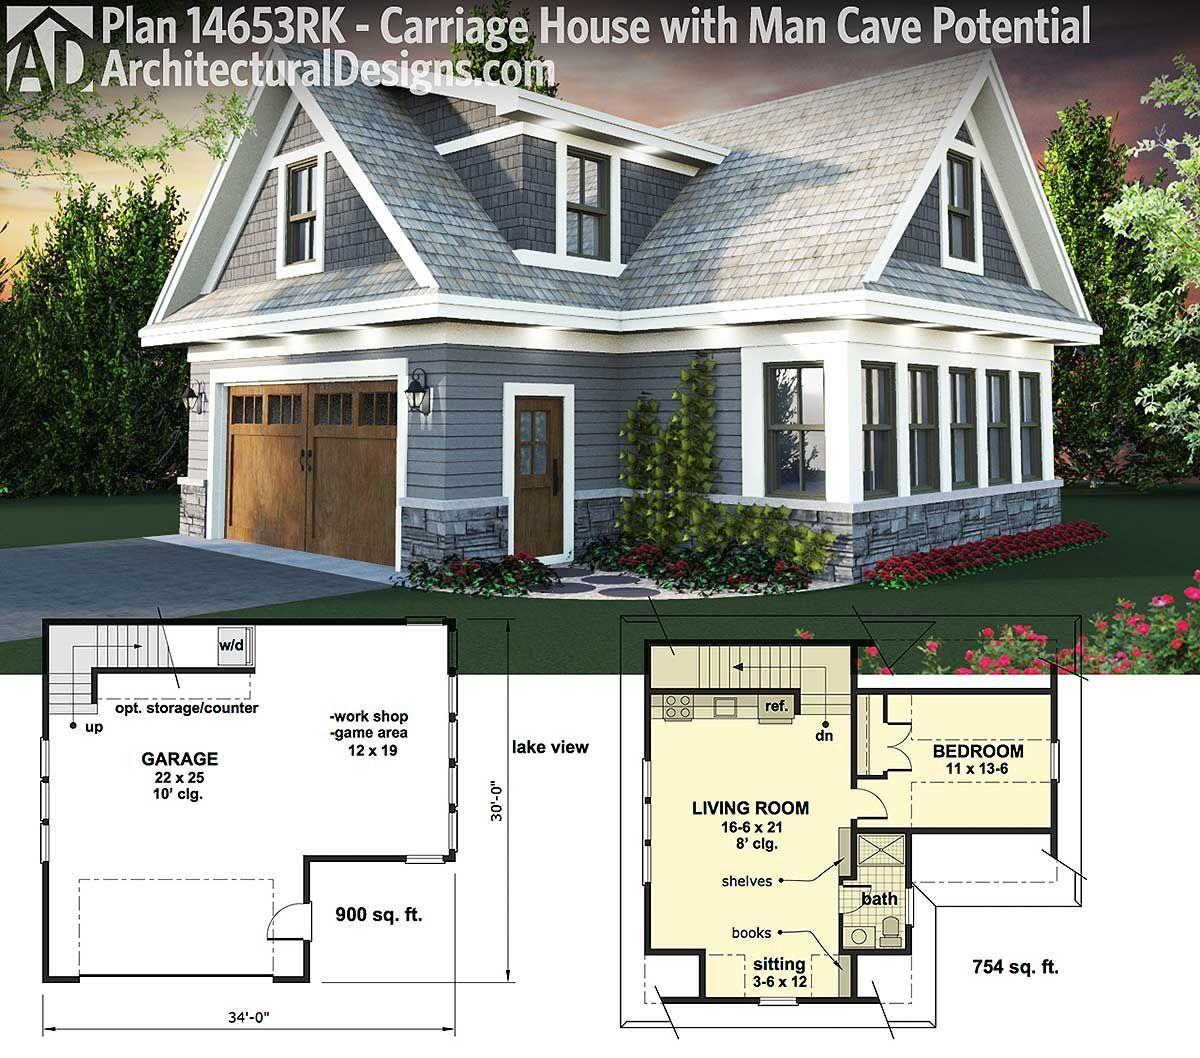 Guest House With Garage Plans In 2020 Garage Guest House Guest House Plans Carriage House Plans